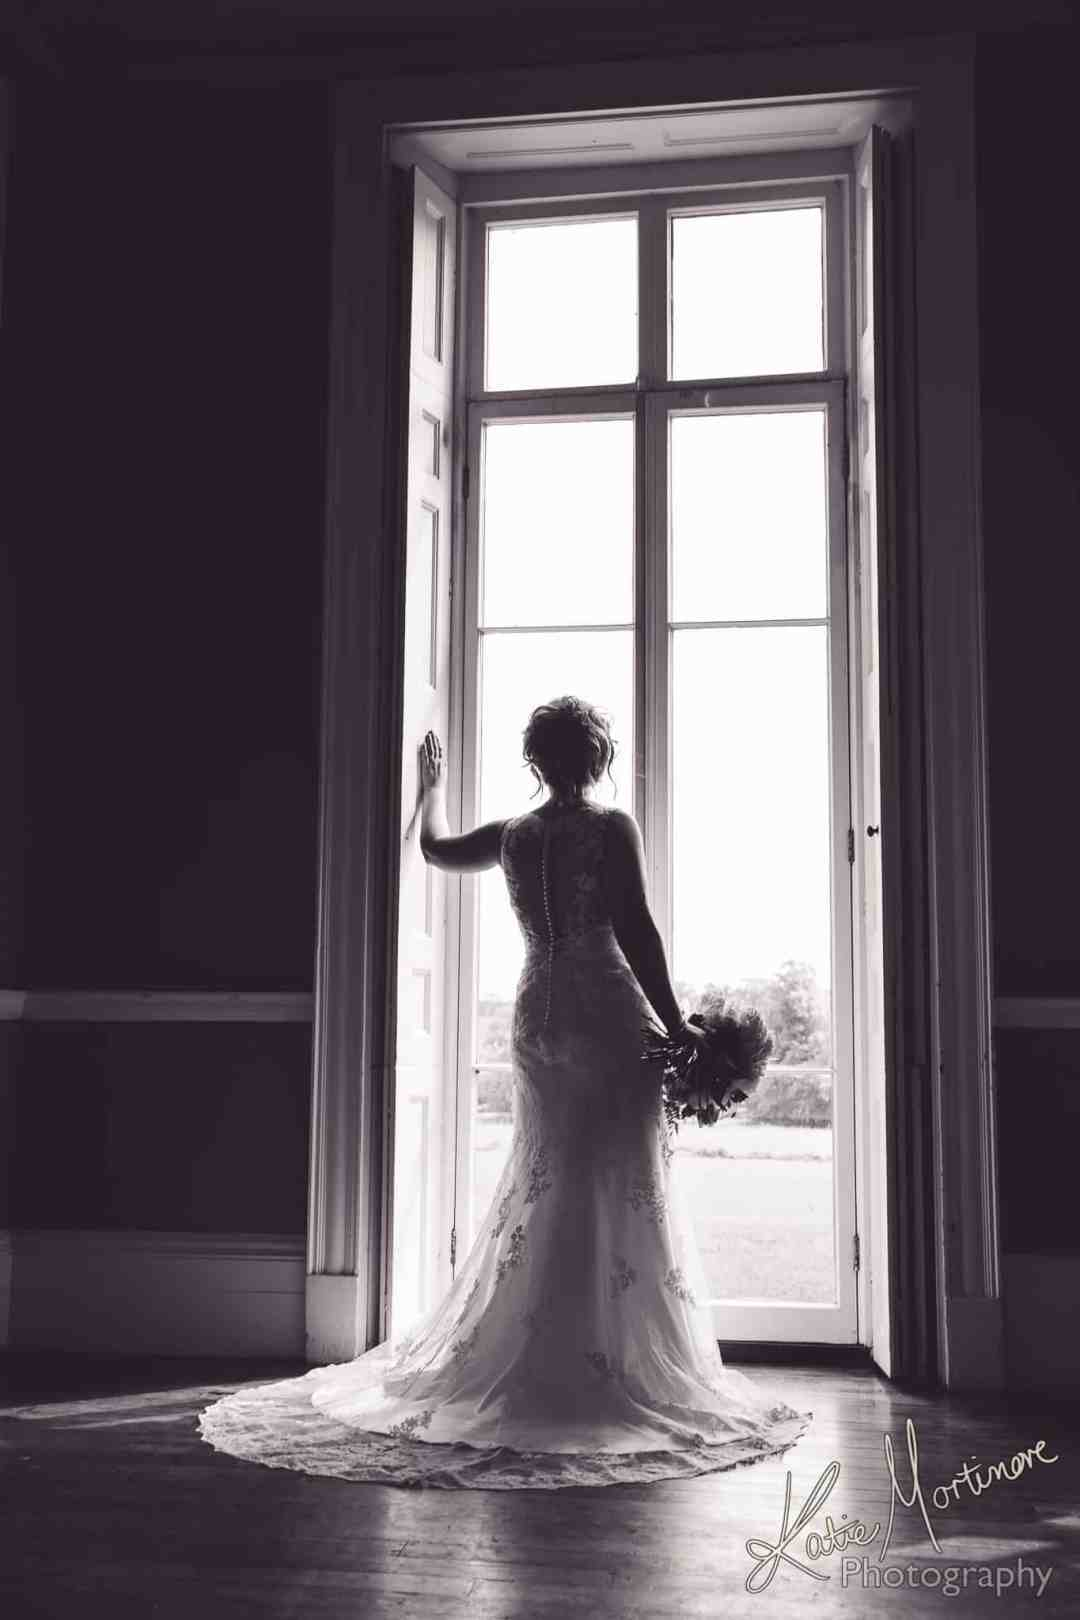 Penton Park Hampshire Wedding Photography beautiful bride tall window